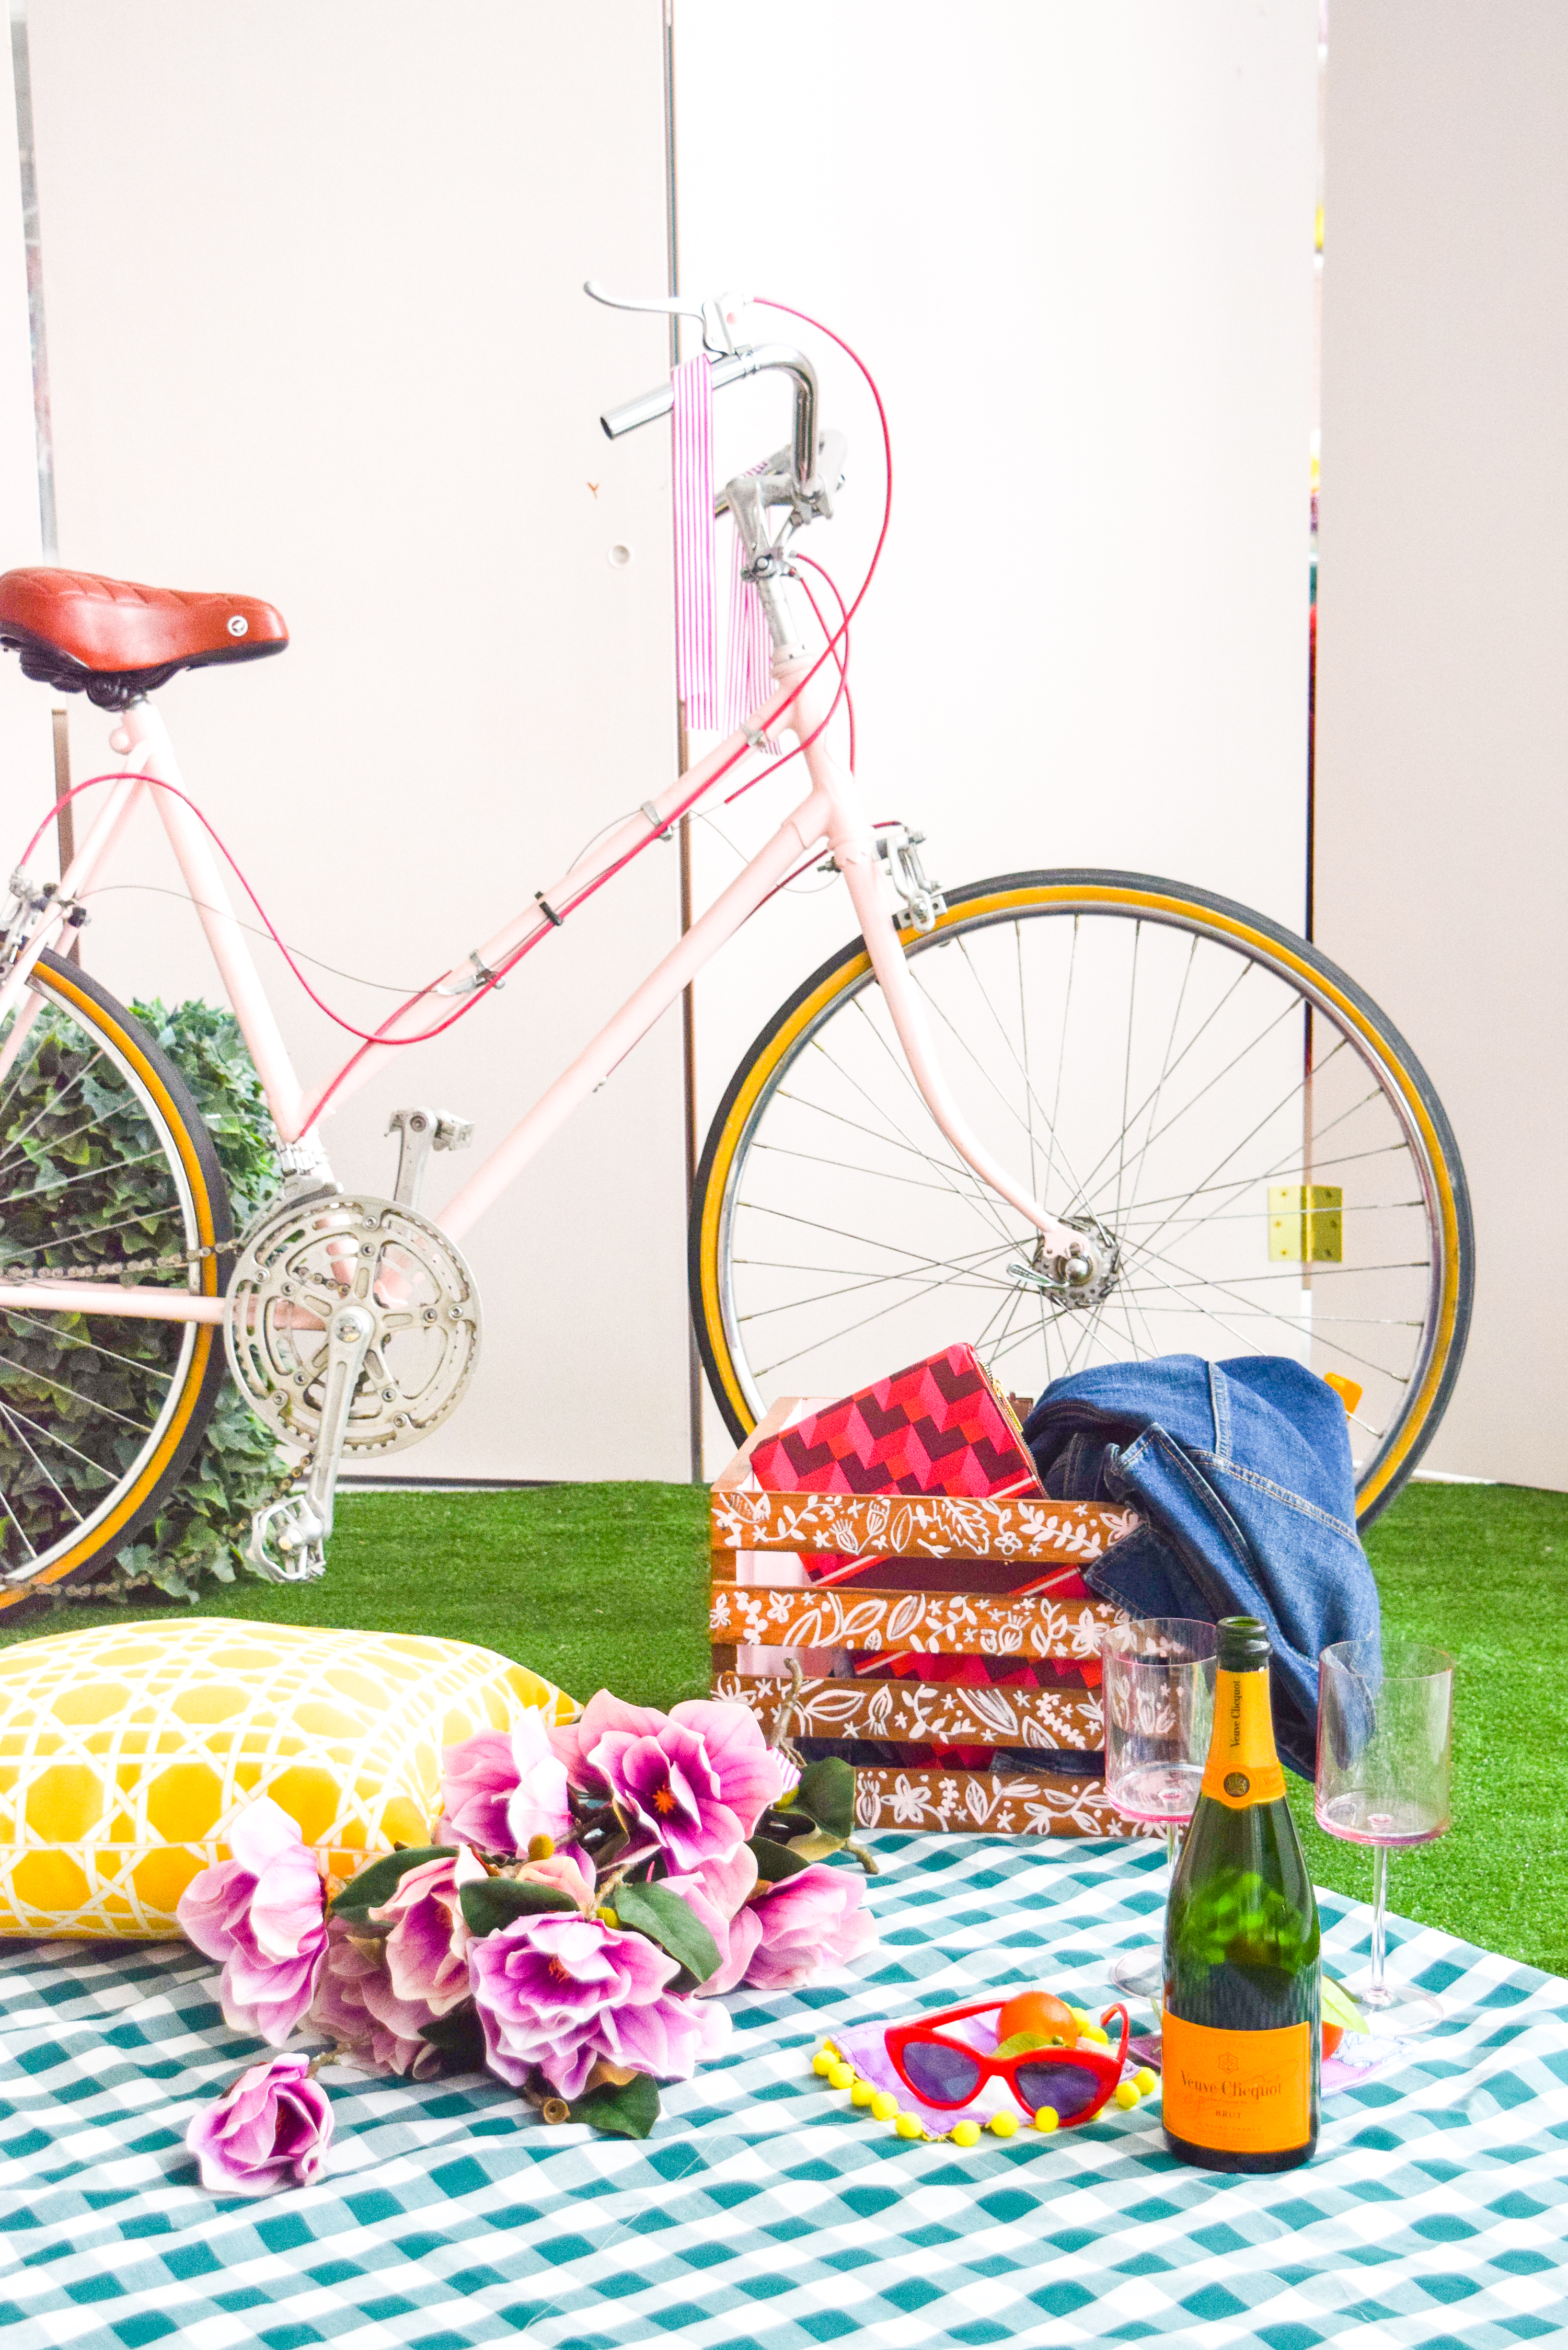 Get your summer bike situation sorted with this DIY Bike Picnic Crate. I transformed a wooden crate using some wood stain, paint and old belts! You can do the same too, just come grab the deets.